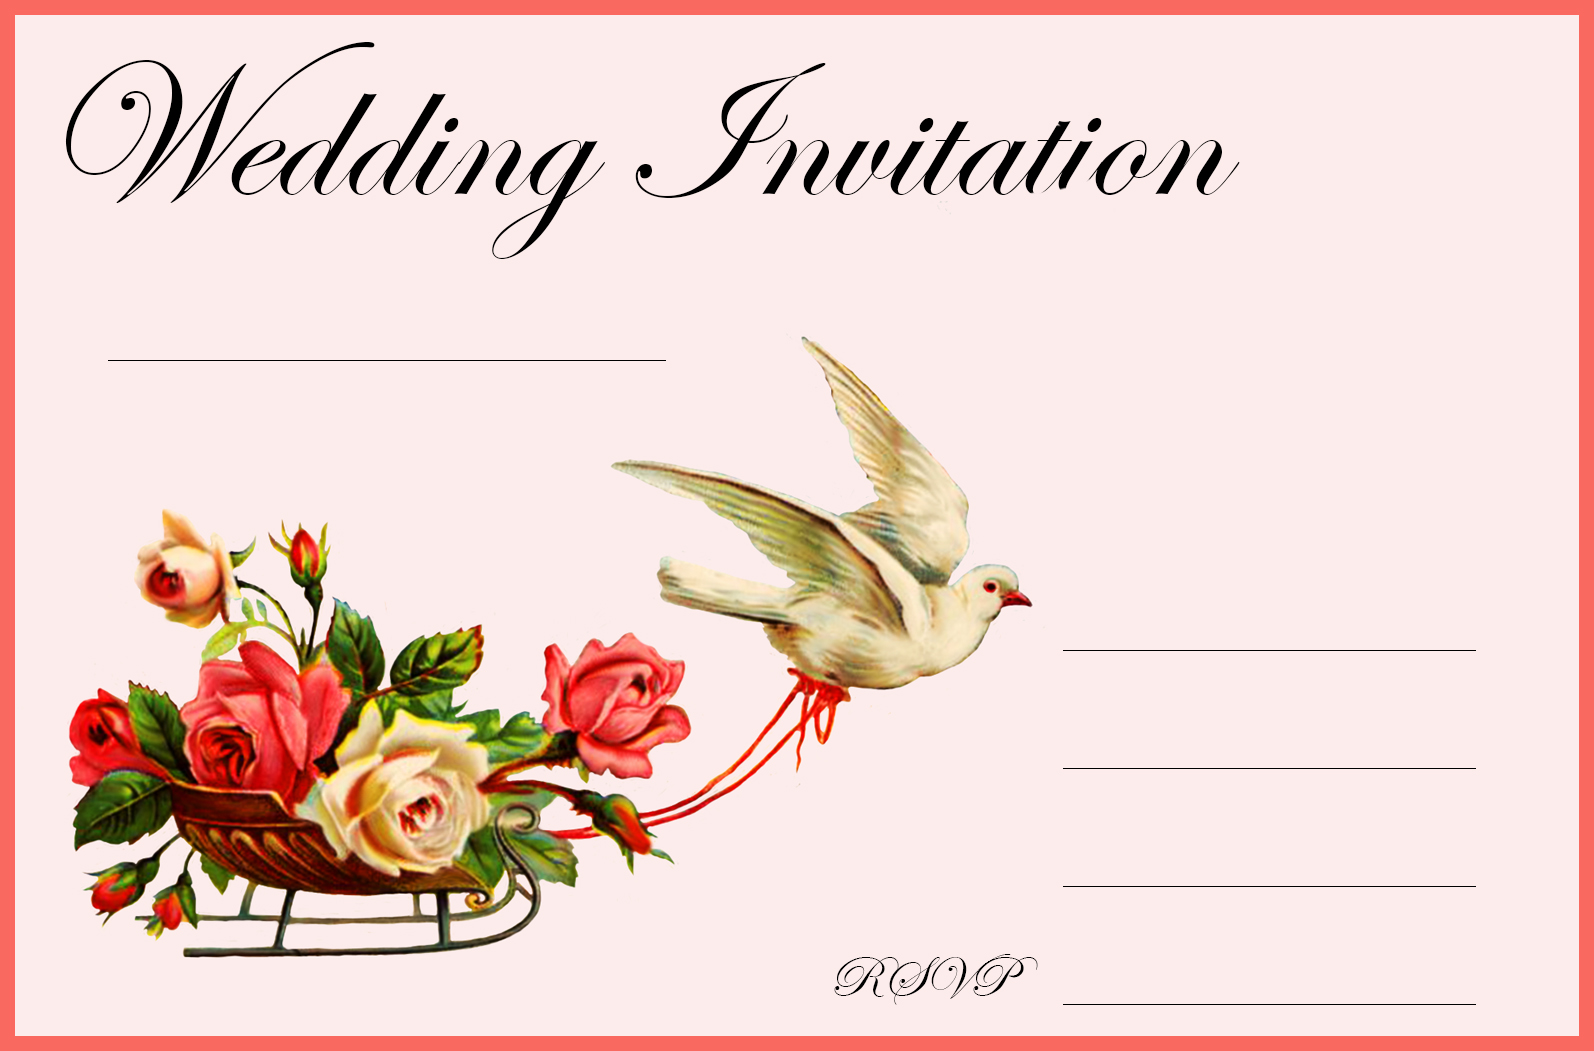 E Card Wedding Invitation: Free Printable Wedding Invitations